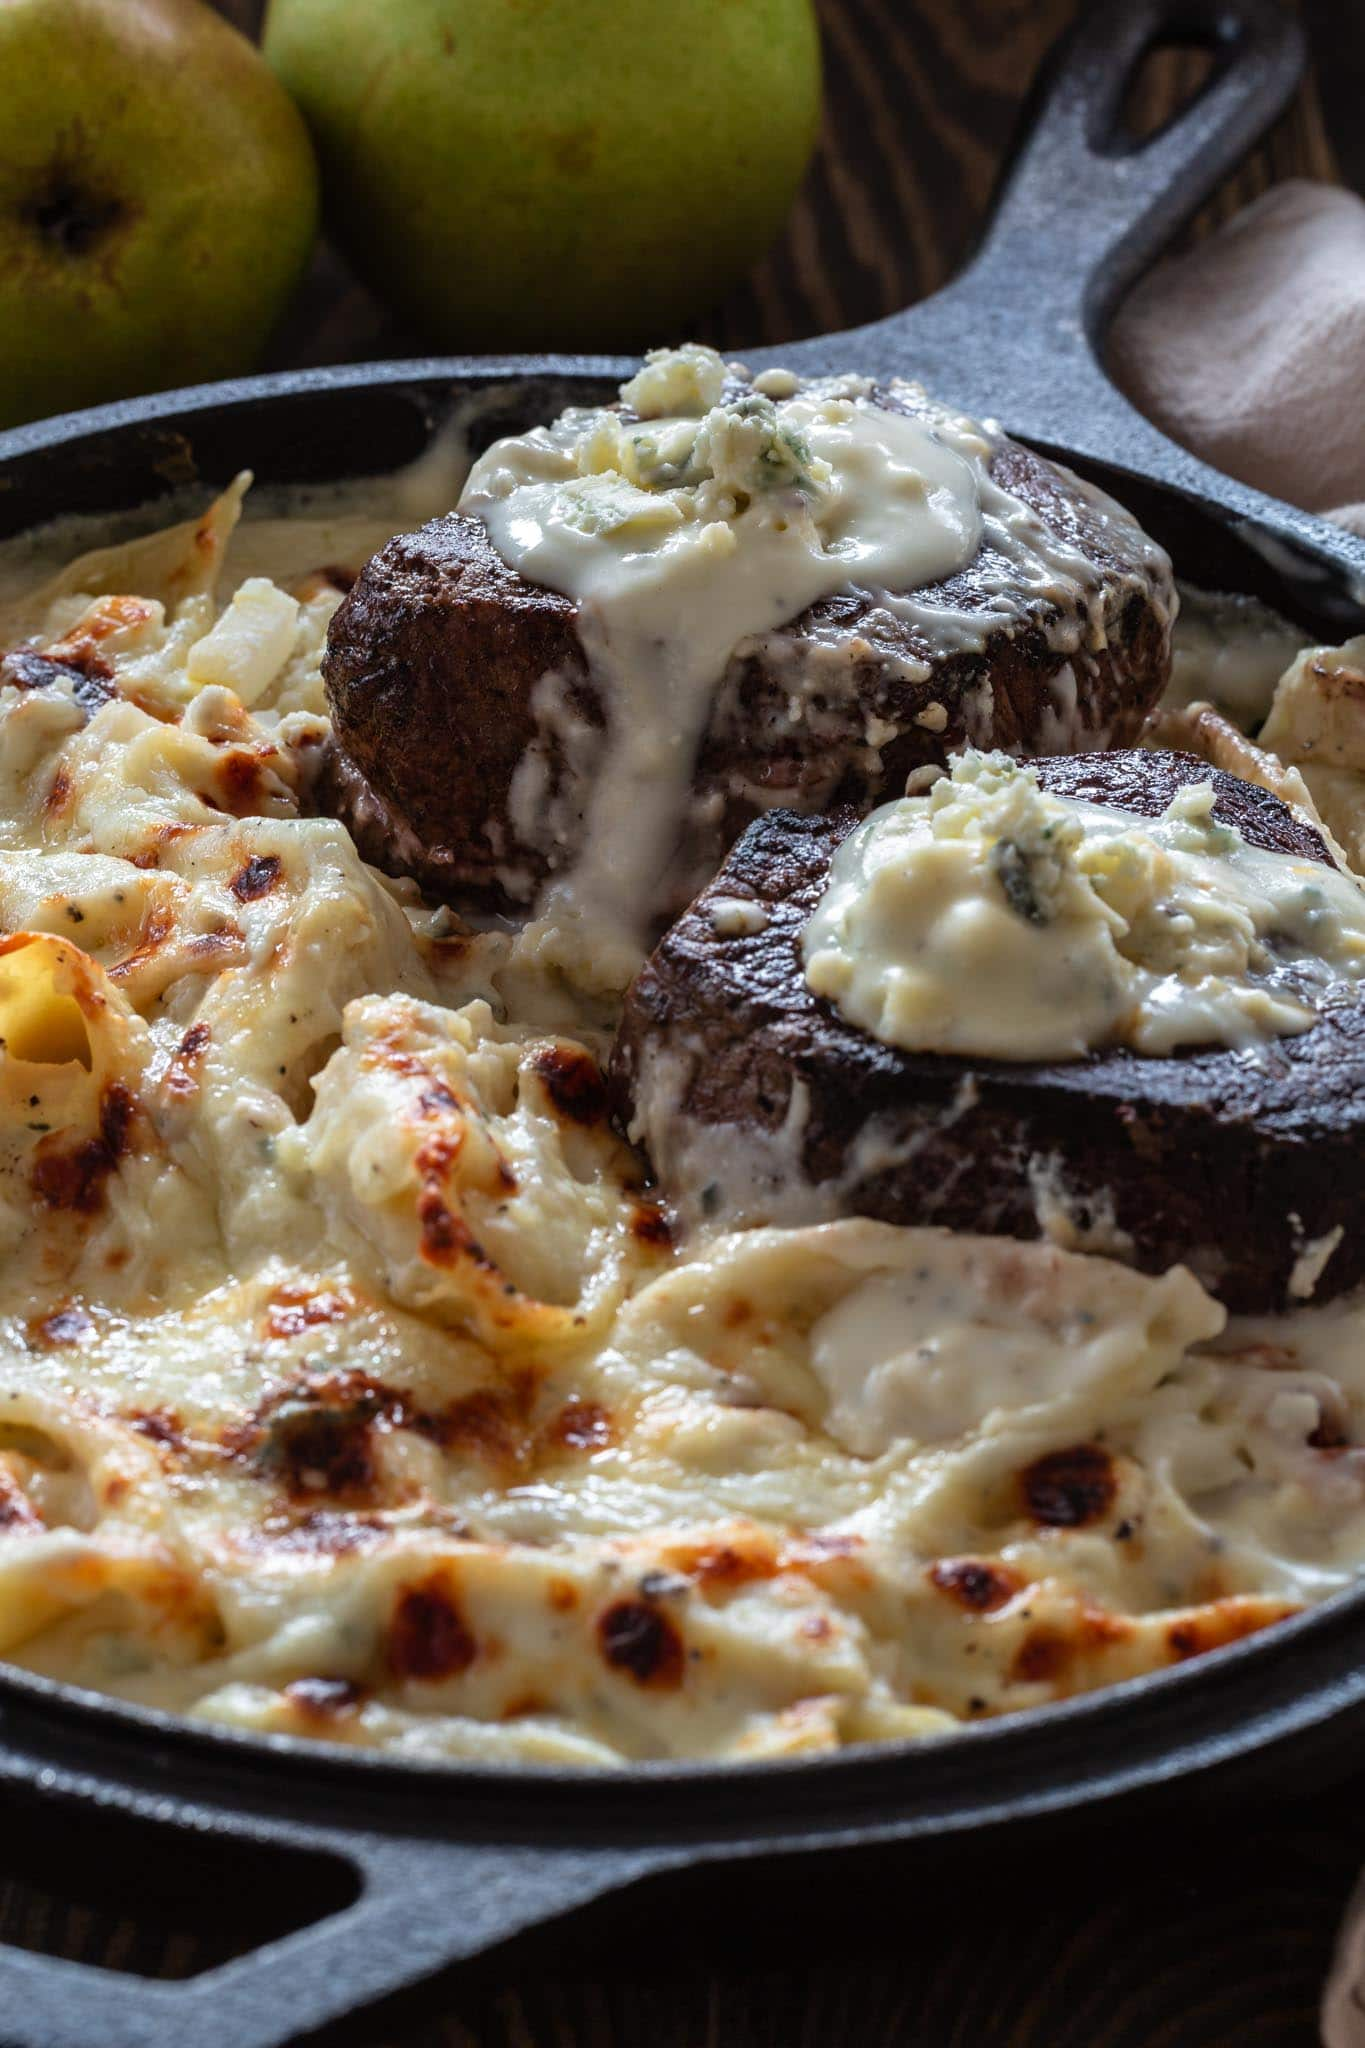 Two succulent filet mignon steaks topped with gorgonzola sauce and served with conchiglioni gratin.